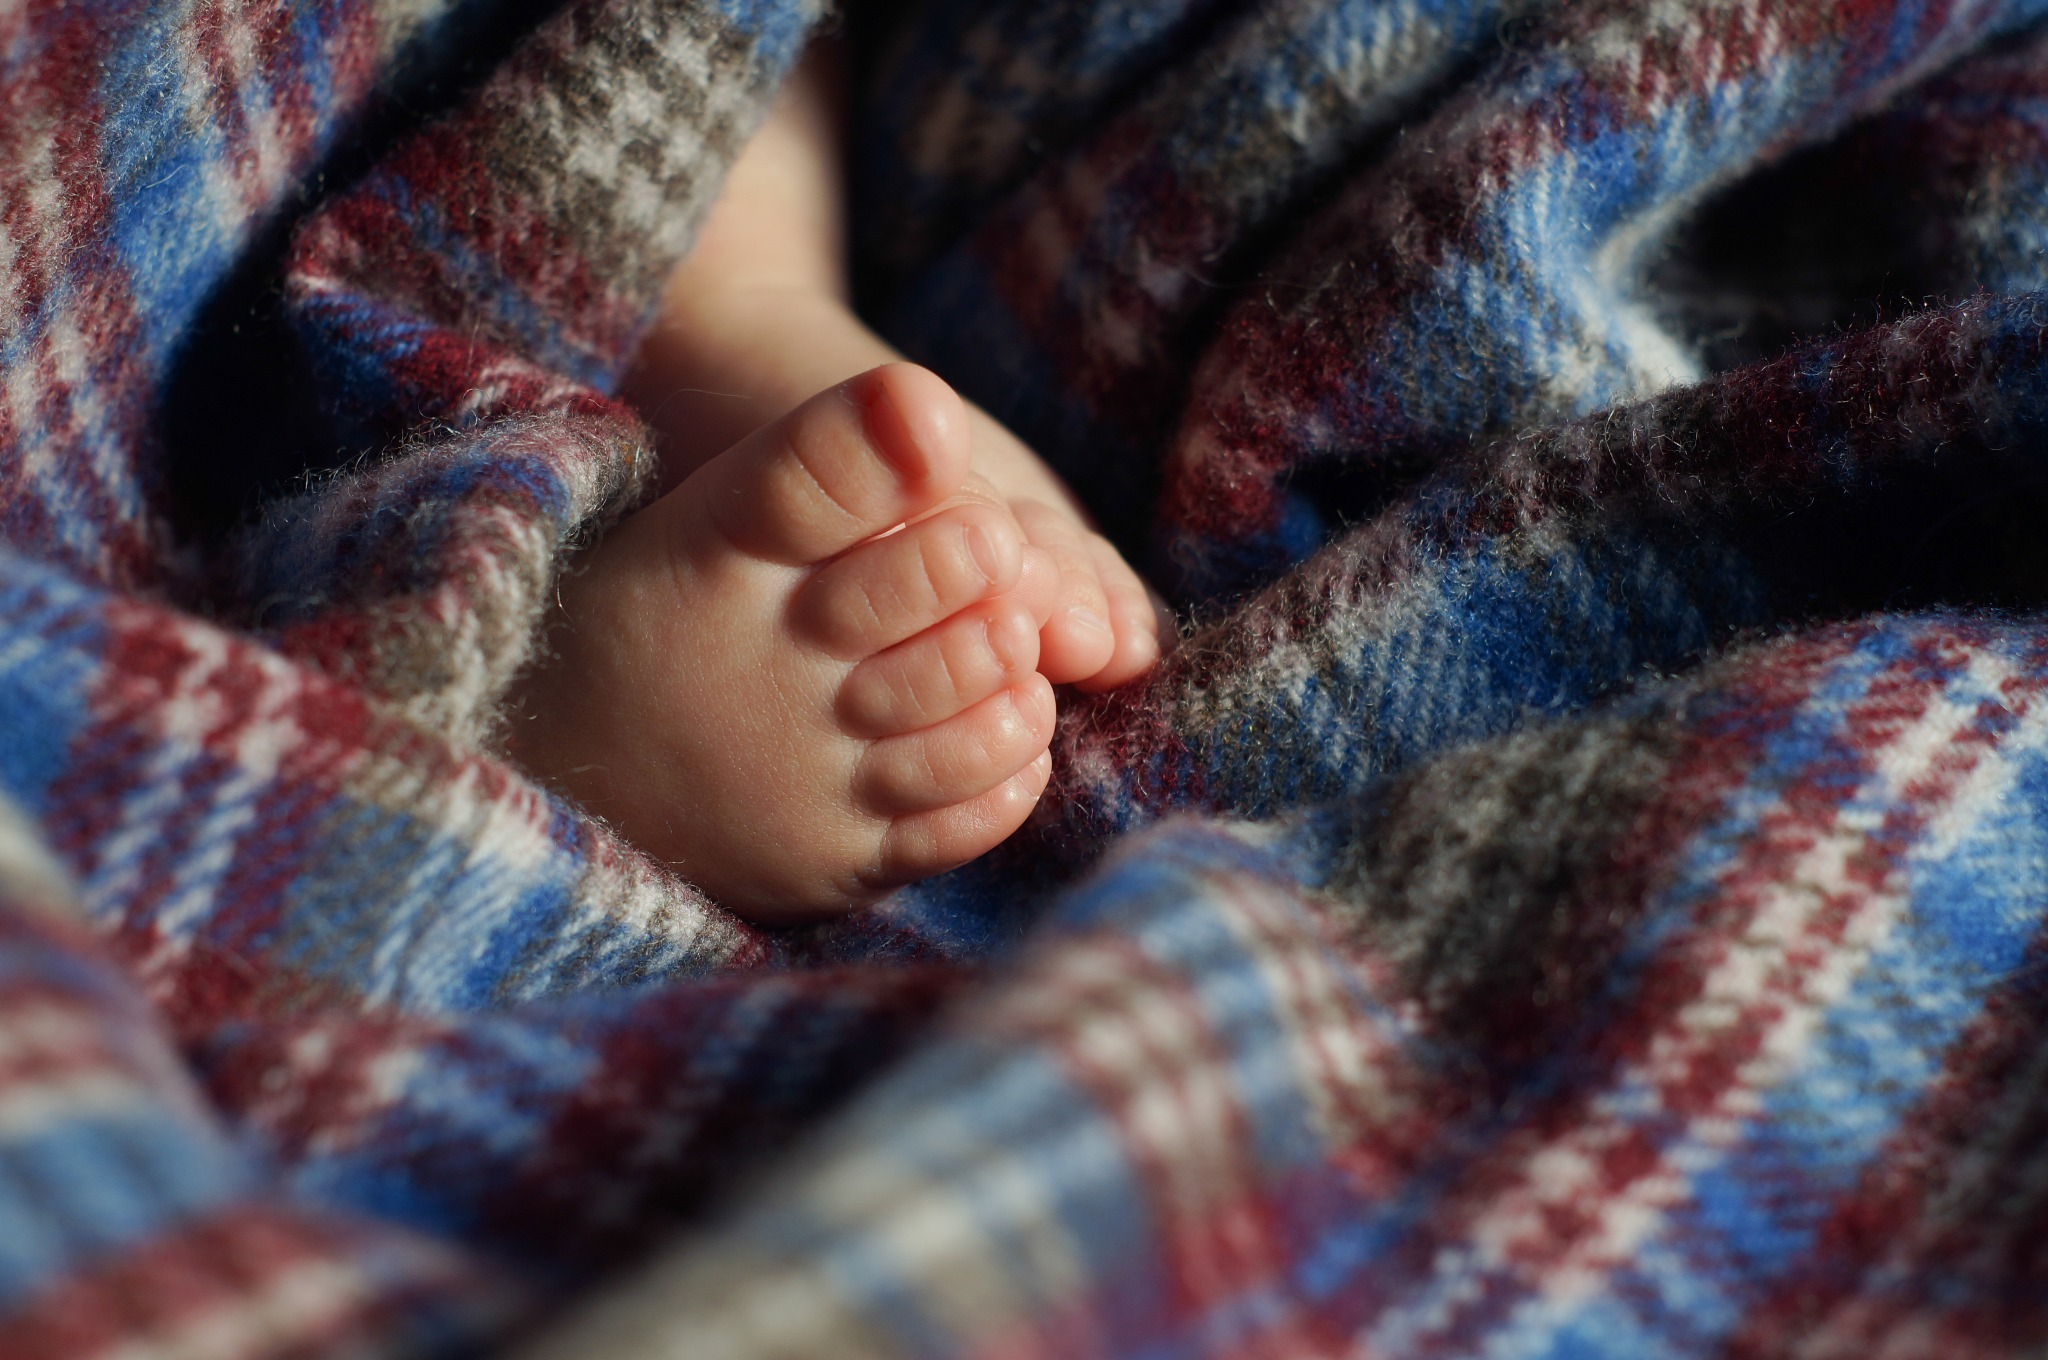 25 Scottish Baby Names to Keep Tradition Alive